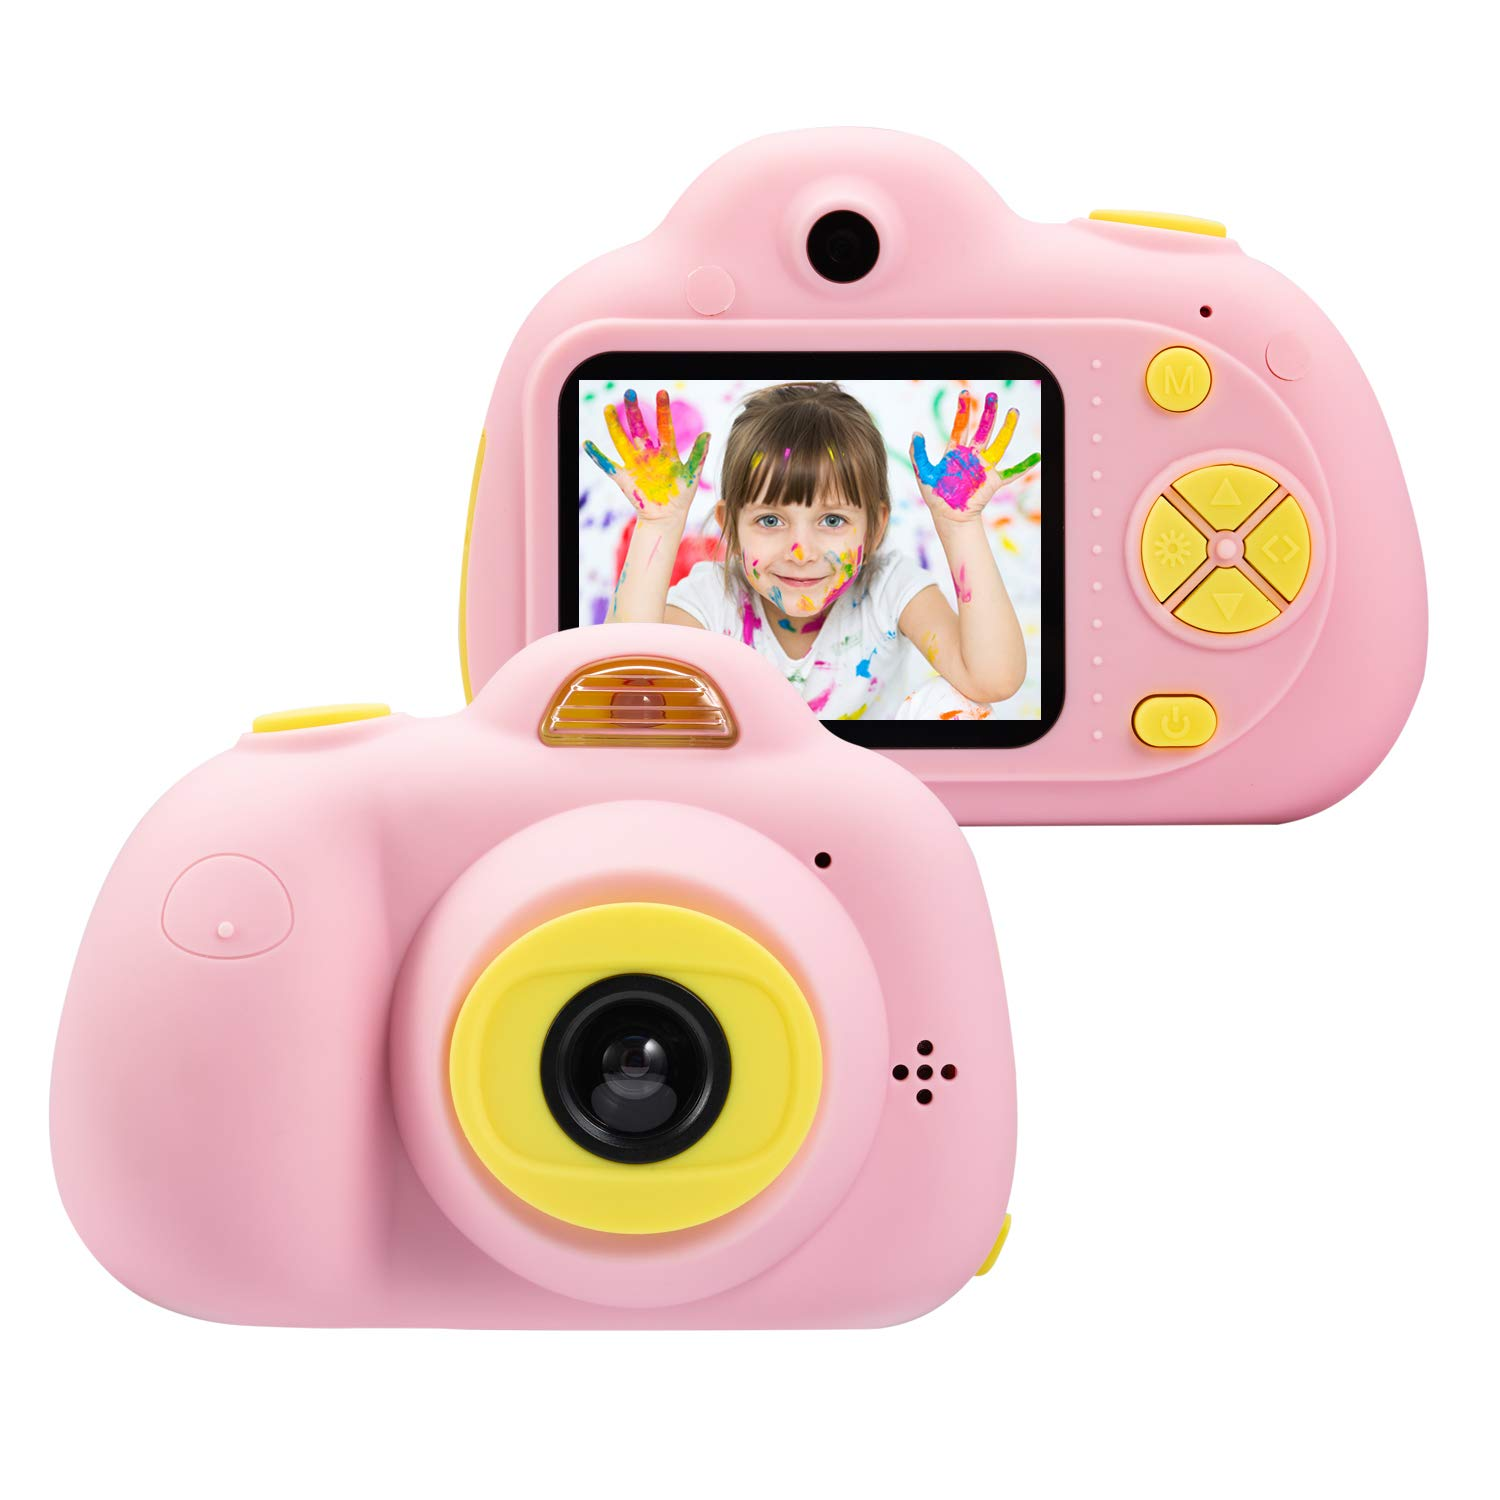 omzer Kids Camera Gifts for 4-8 Year Old Girls, Shockproof Cameras Great Gift Mini Child Camcorderr for Little Girl with Soft Silicone Shell for Outdoor Play,Pink(16GB Memory Card Included)